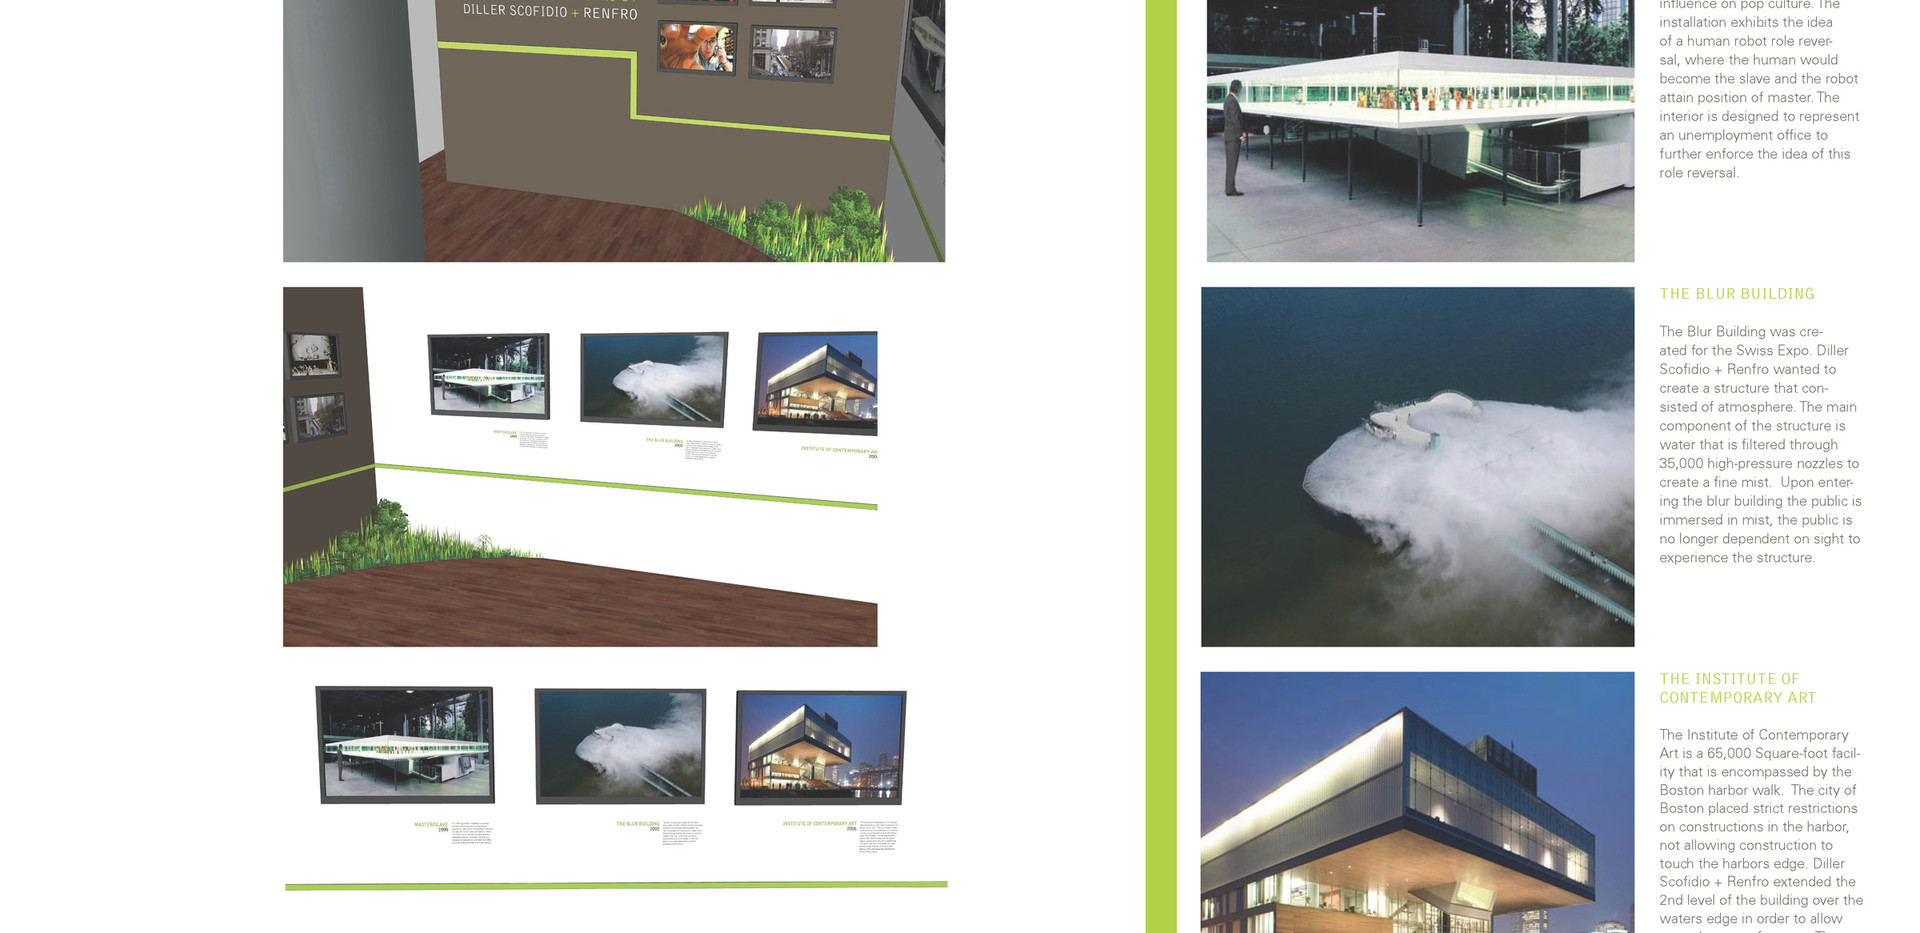 4_DILLER SCOFIDIO +RENFRO FINAL_Page_3.j